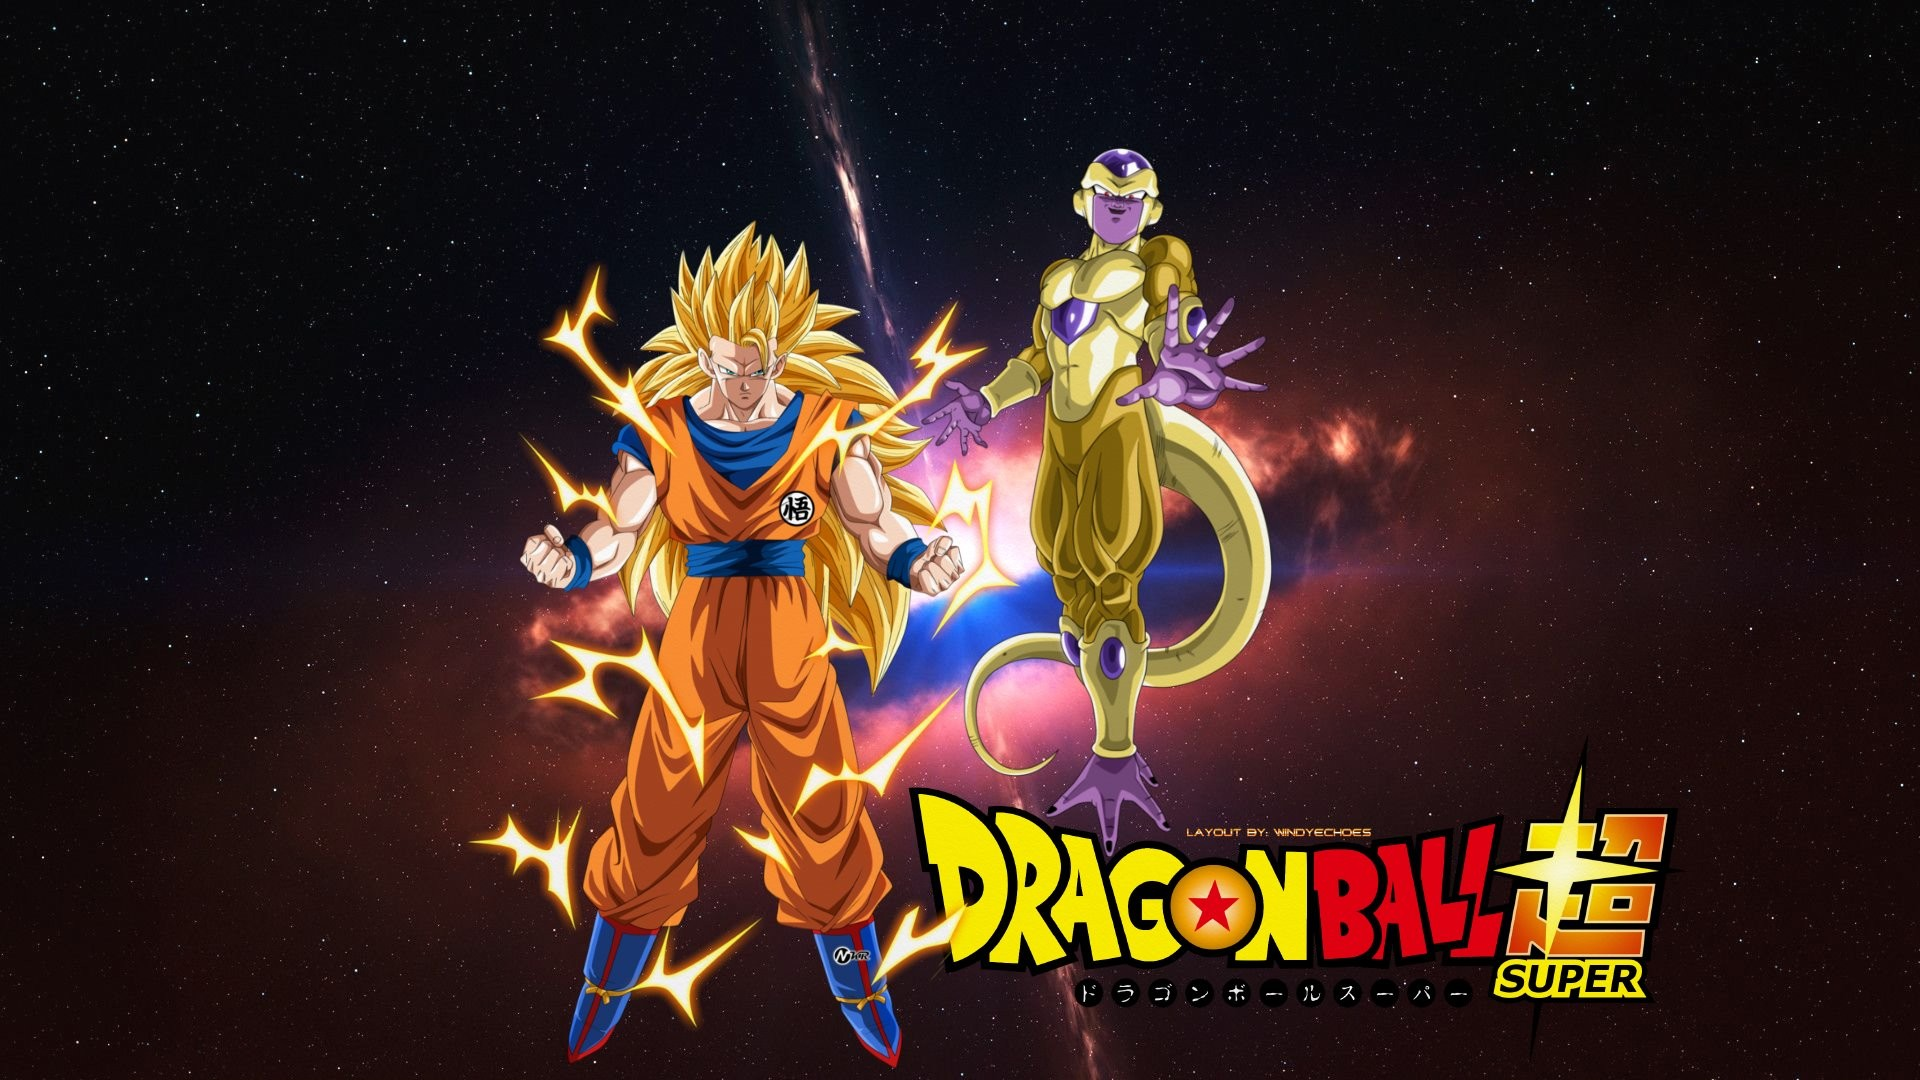 … Golden Frieza And SSJ 3 Goku – Tournament Of Power by WindyEchoes